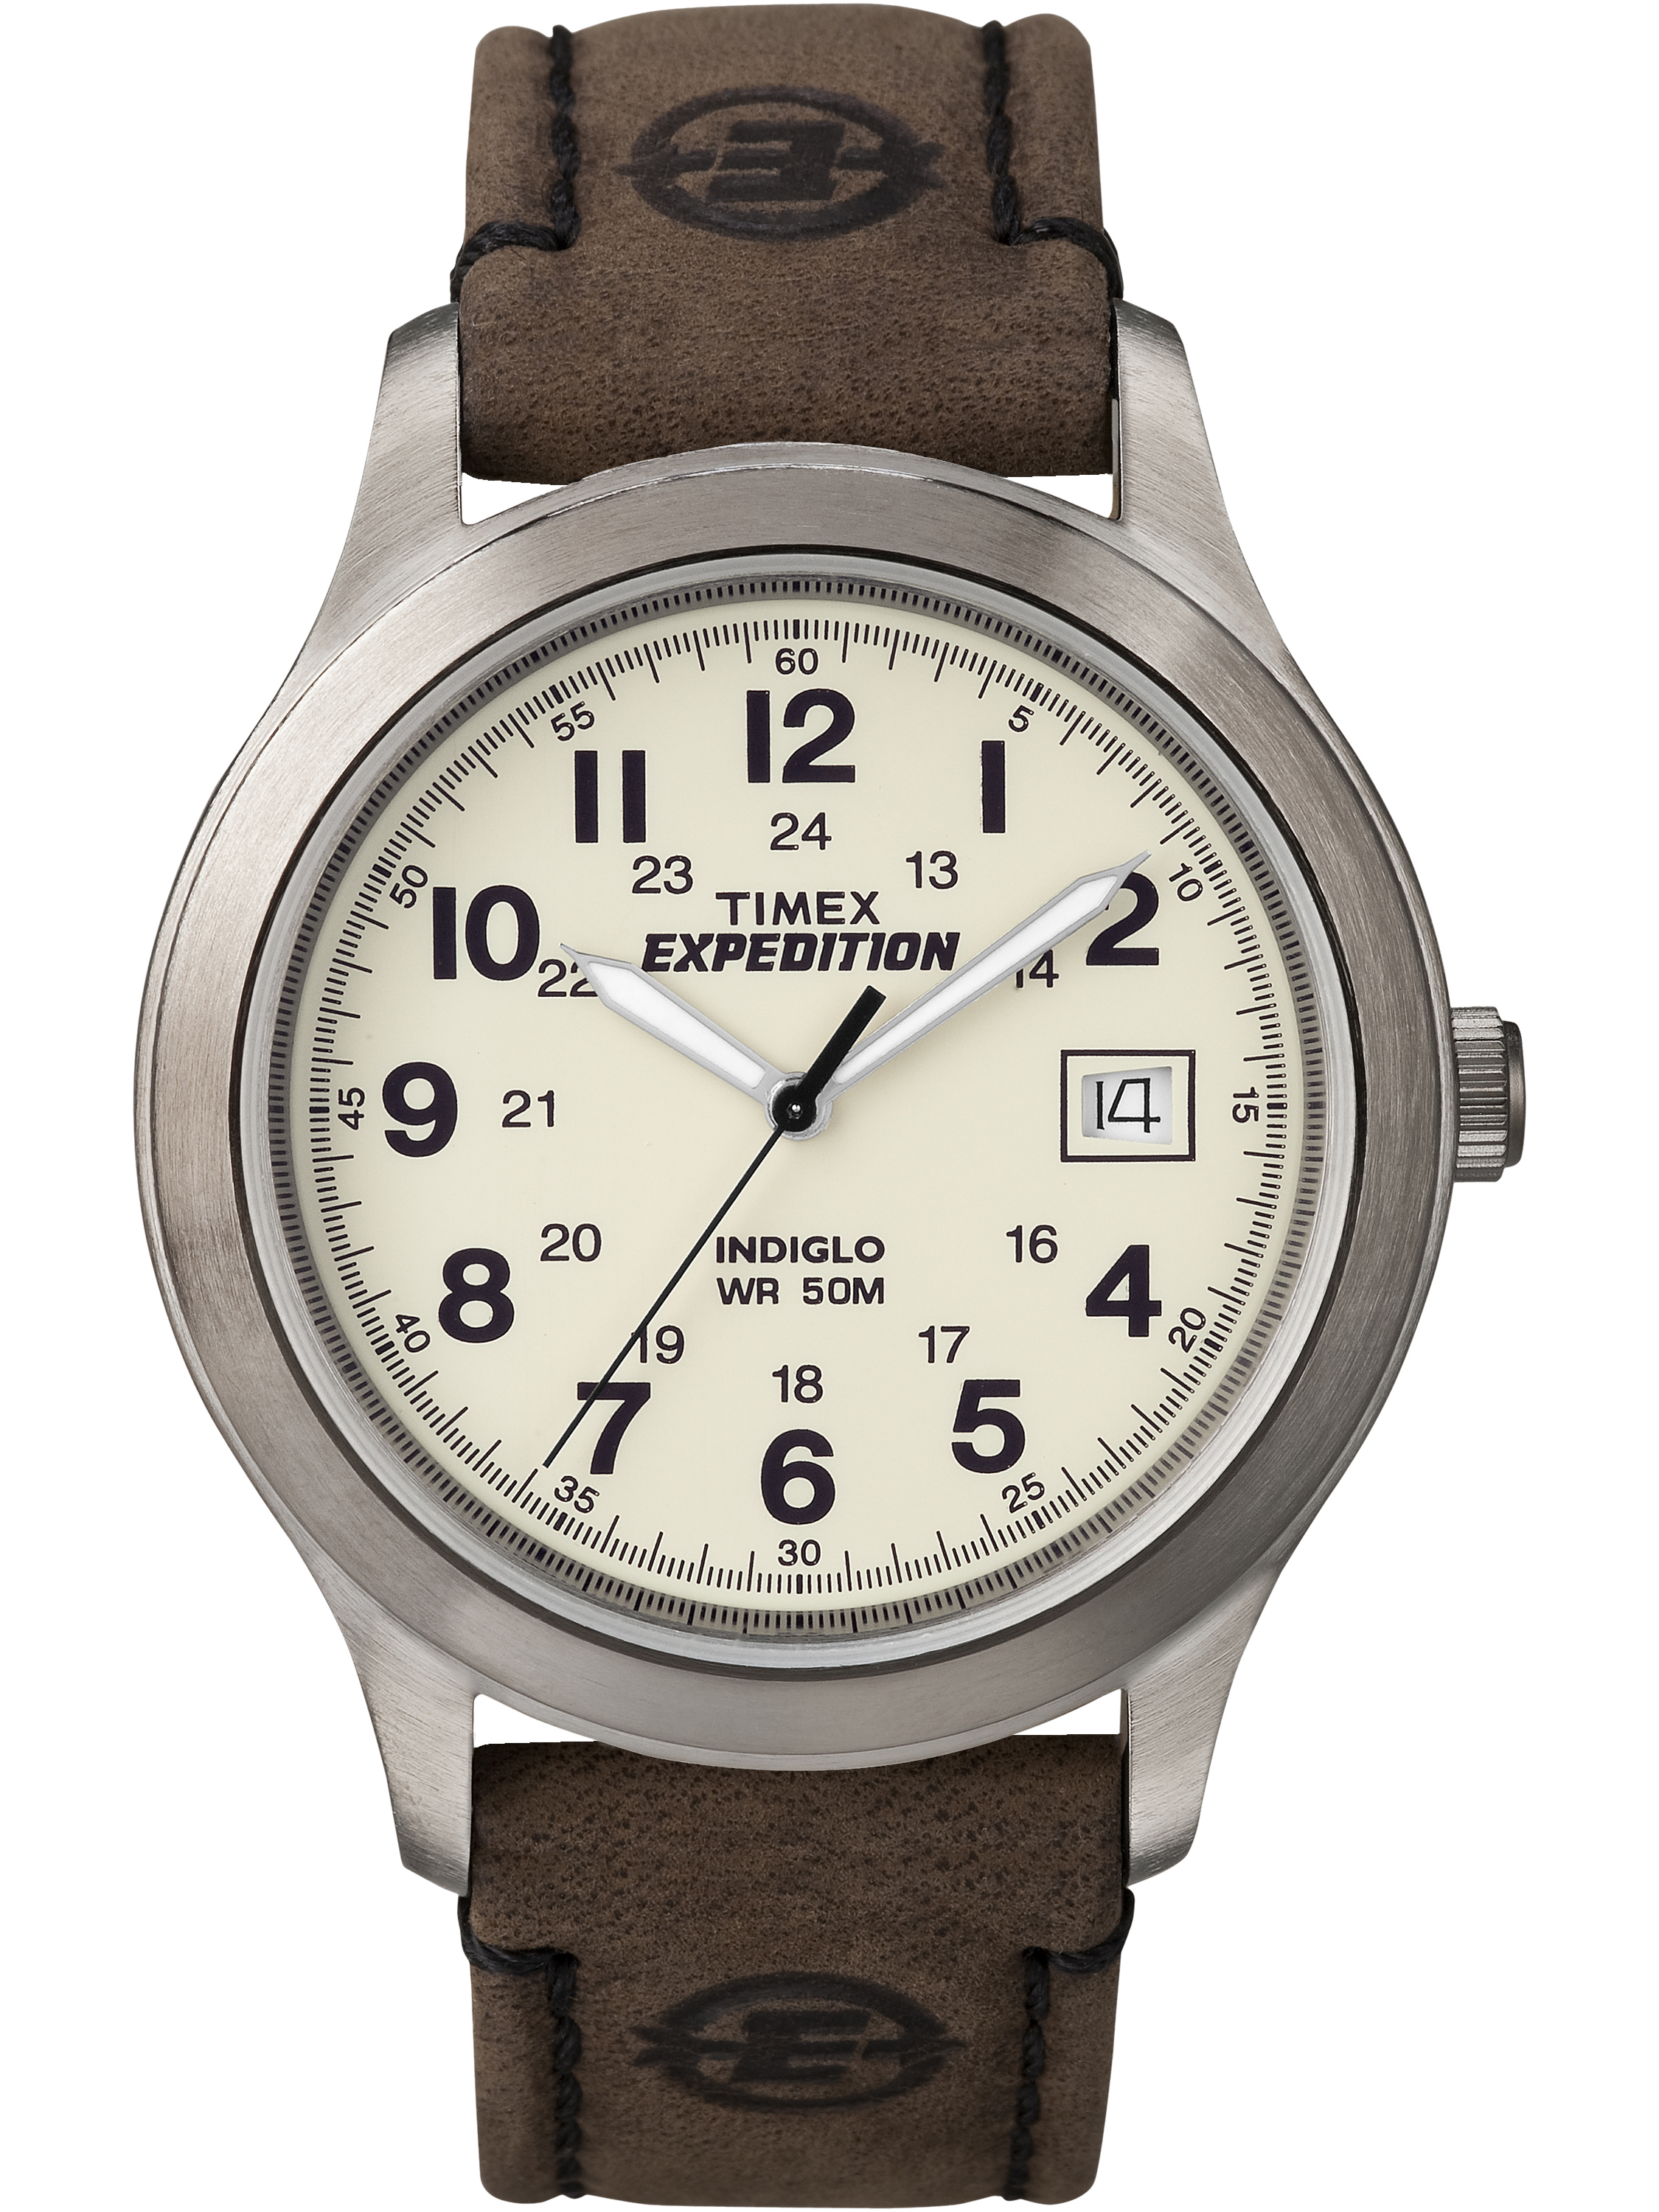 Price mistake? Timex Men's Expedition Metal Field Watch only $9! (was $55)